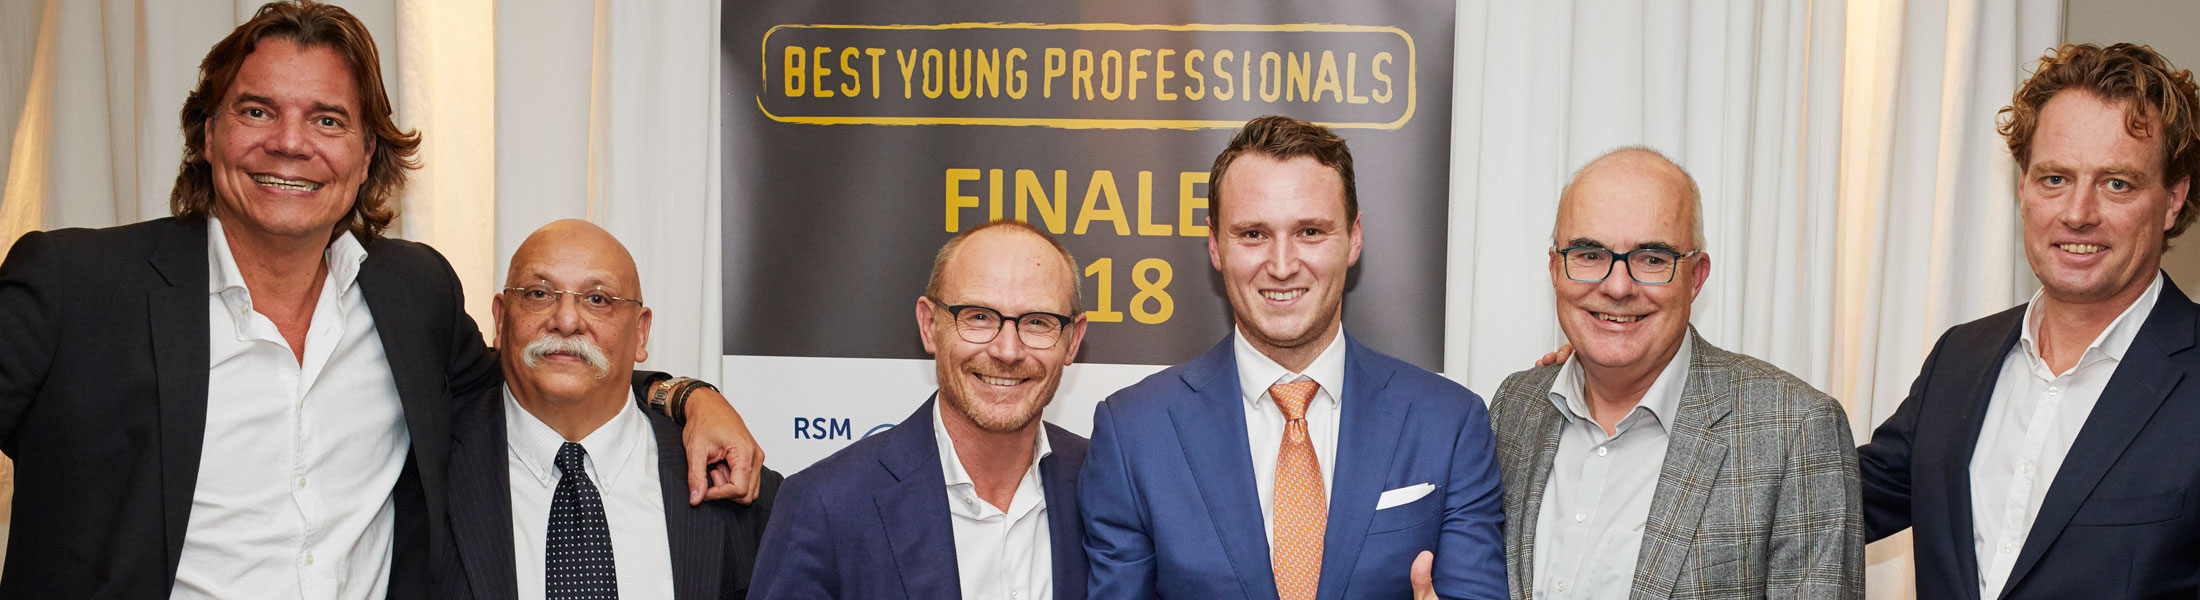 Best Young Professionals 2018